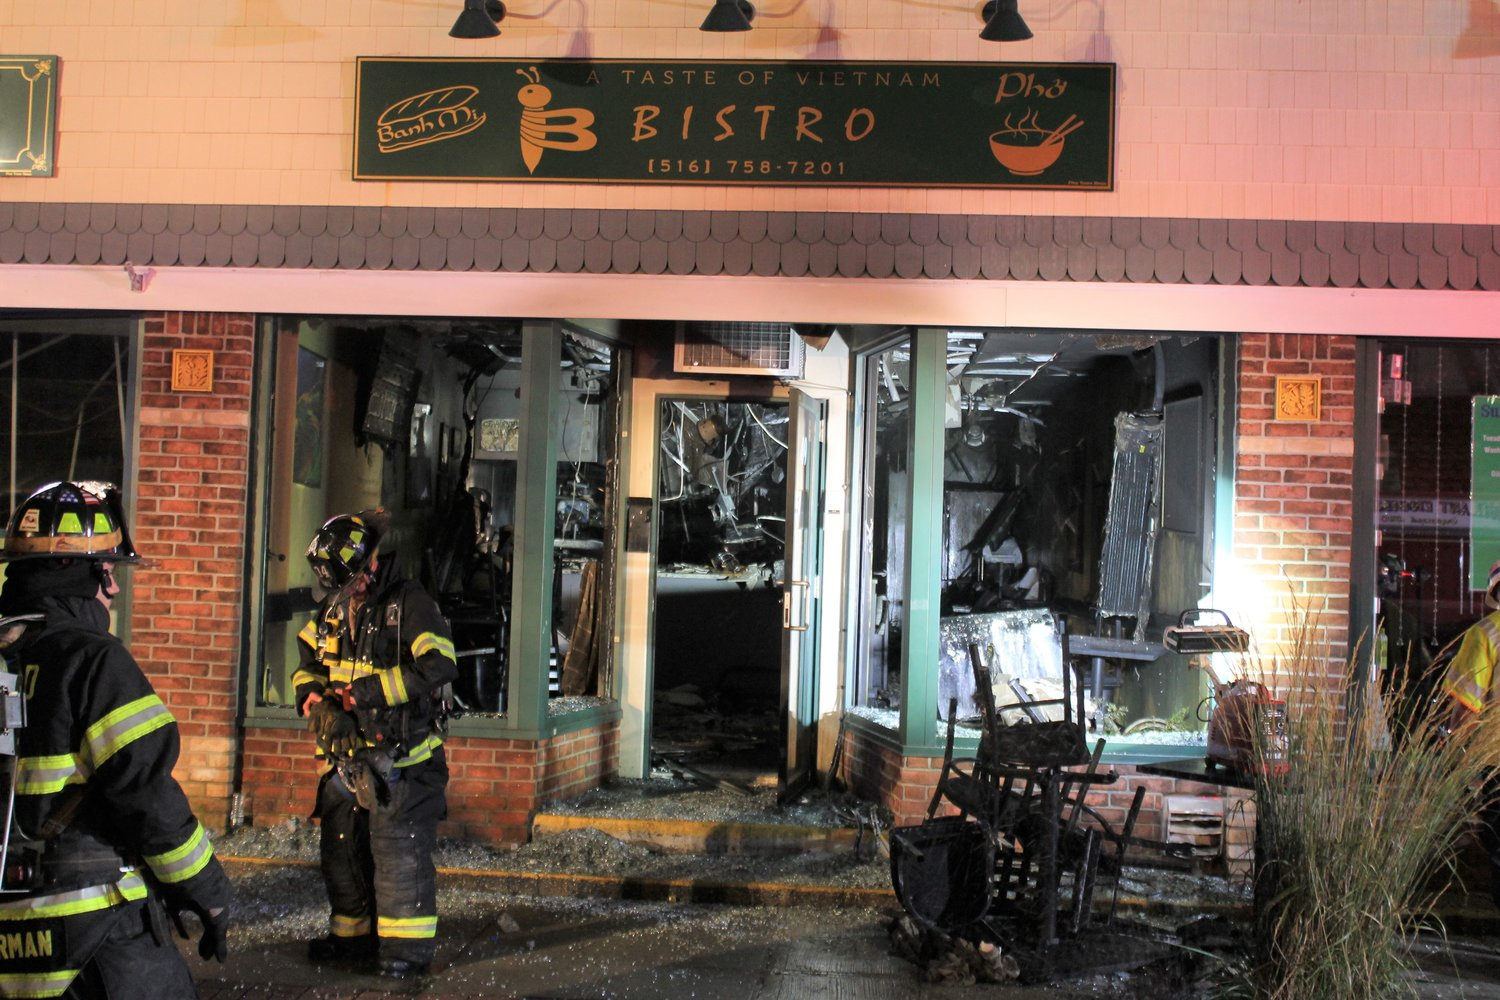 Frefighters rushed to extinguish a blaze at the Taste of Vietnam Bistro on Main Street on Aug. 8 at 1 a.m. The restaurant was severely damaged by the fire.